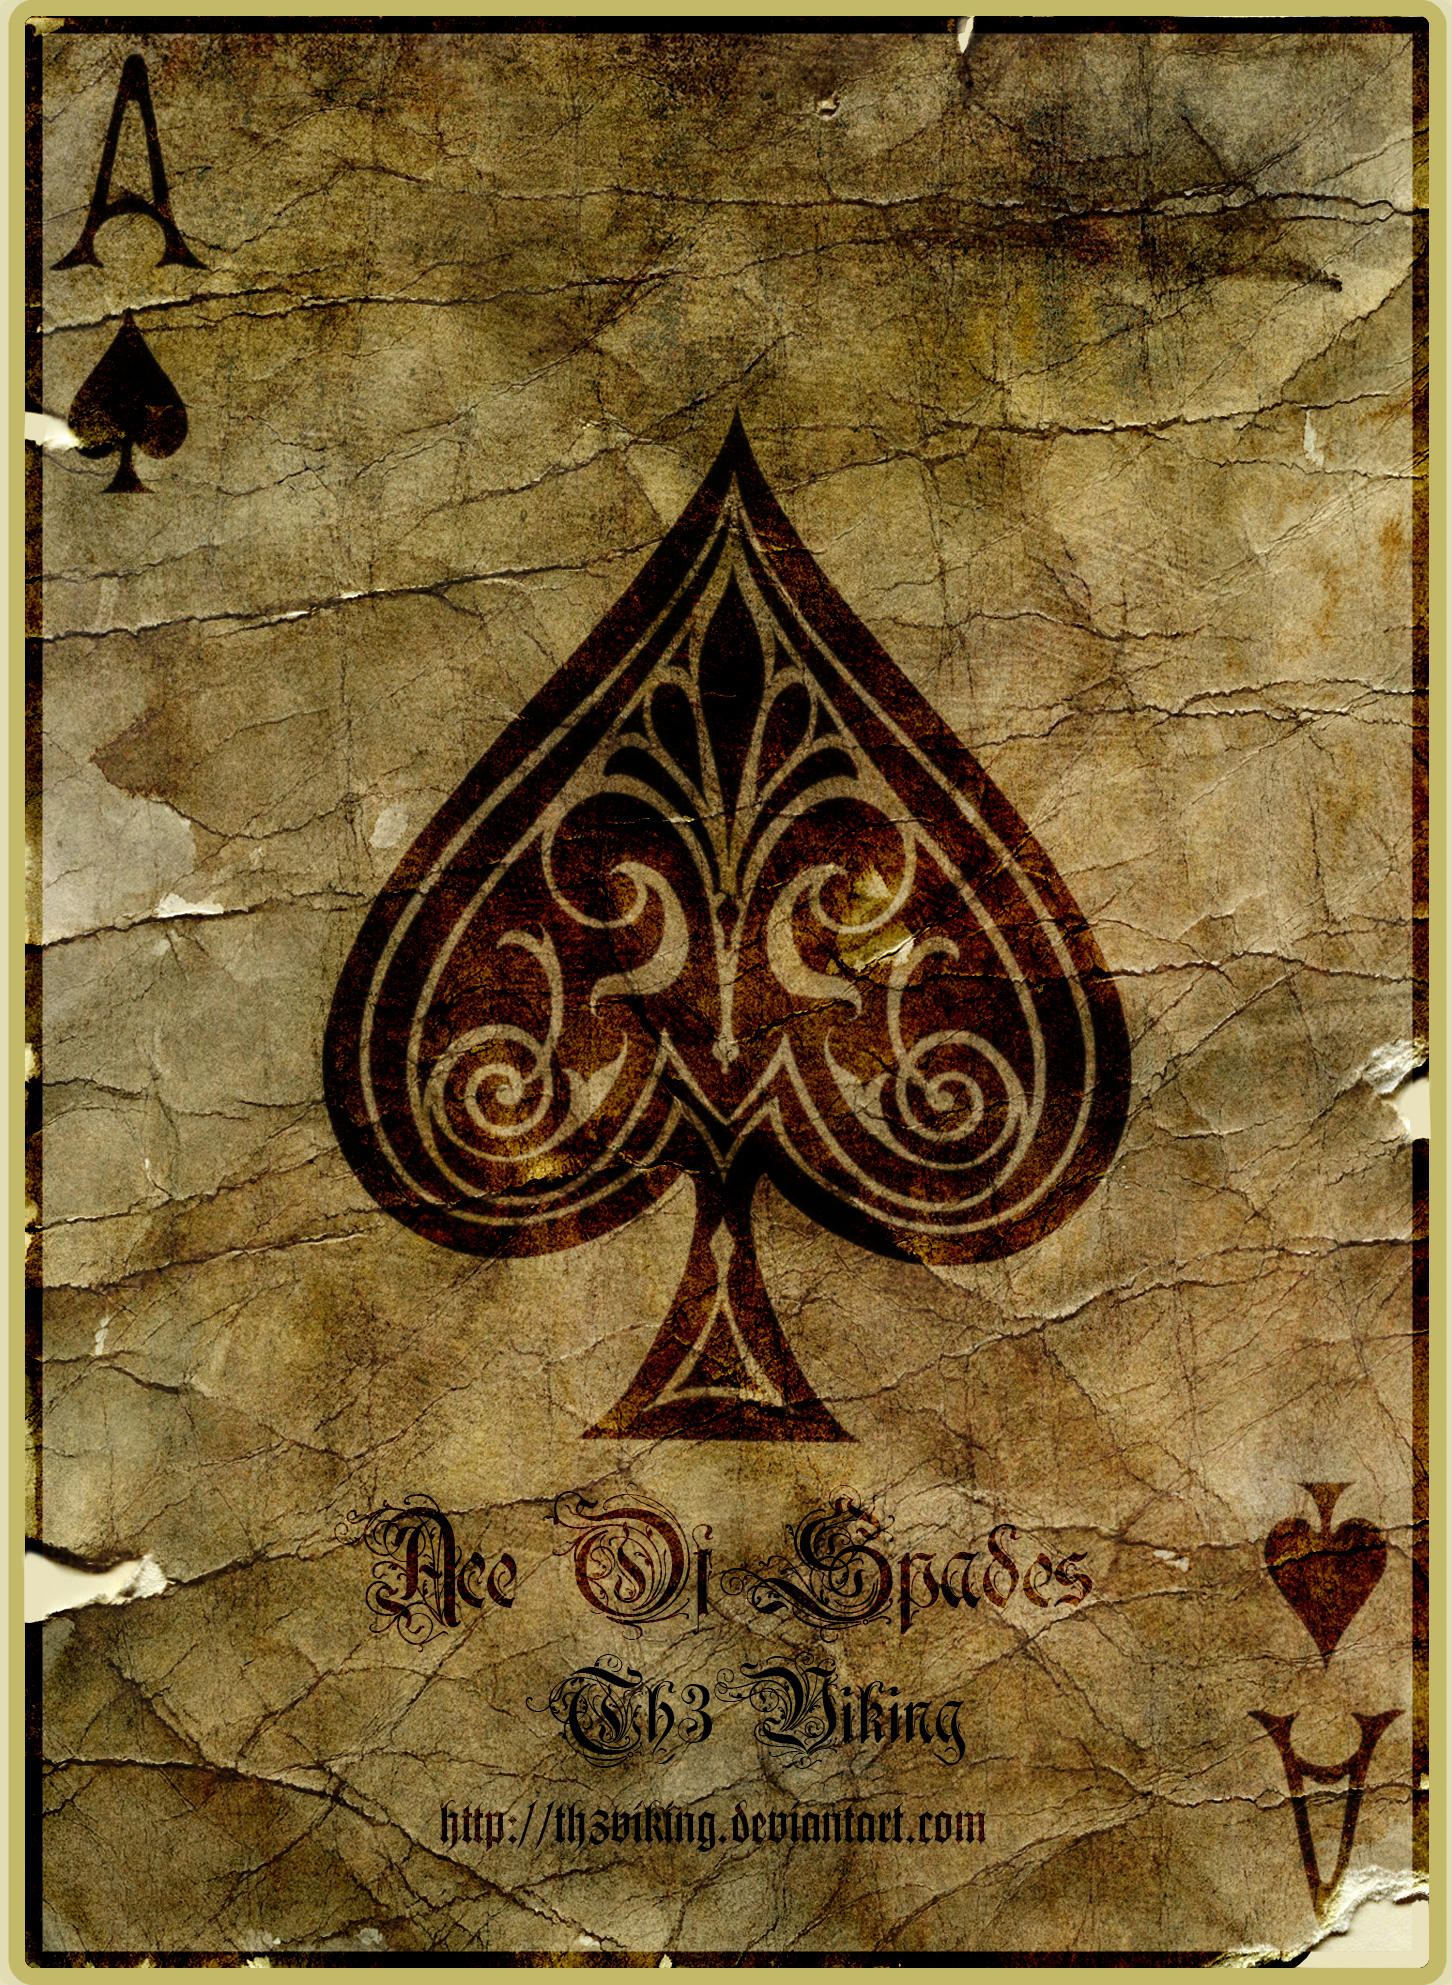 Ace Of Pentacles Images On Pinterest: Ace Of Spades By Th3Viking On DeviantArt